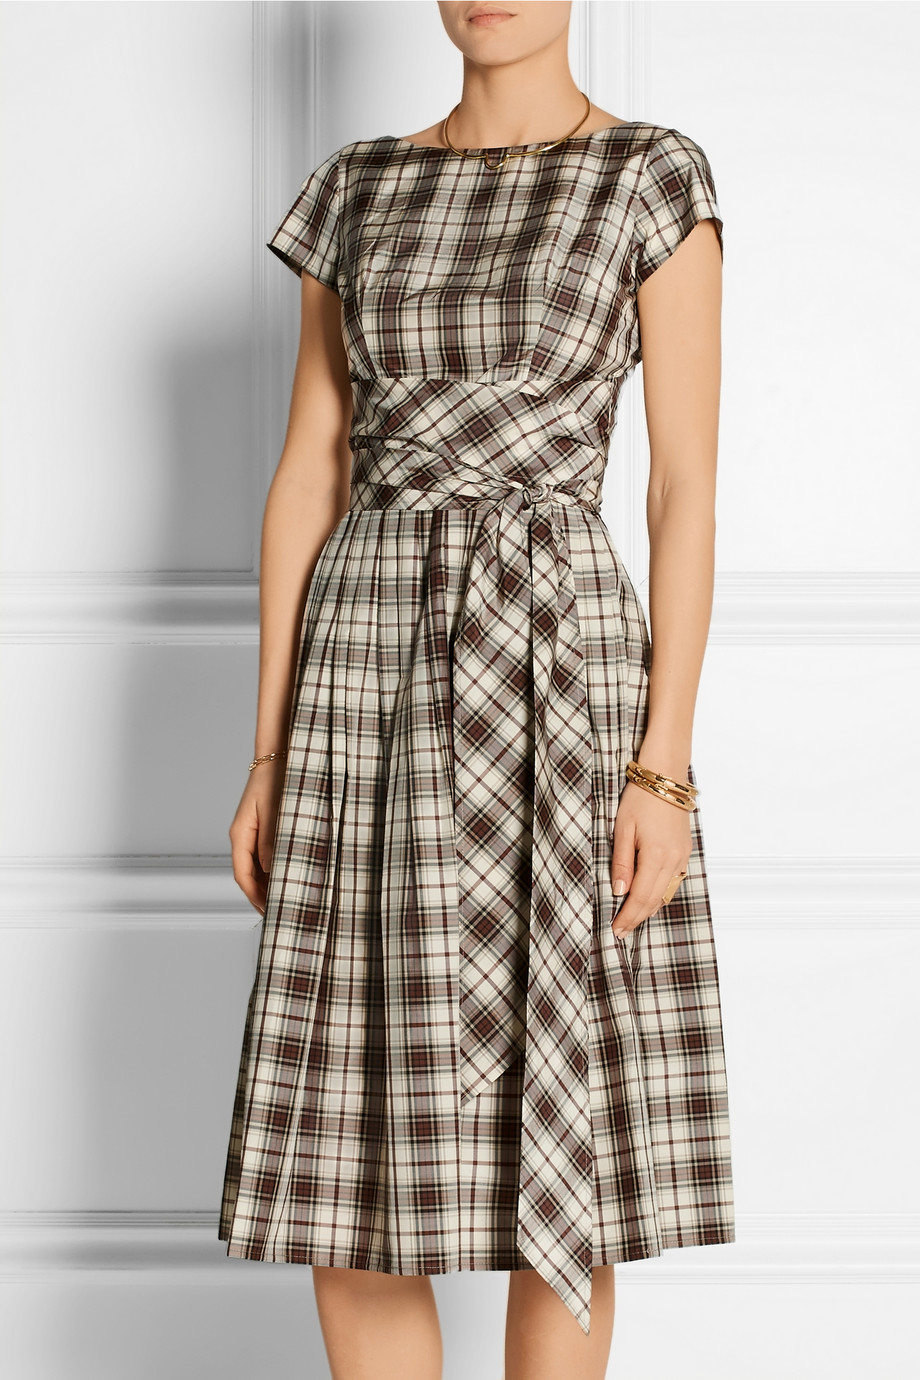 Lyst Michael Kors Plaid Tie Waist Midi Dress In Brown